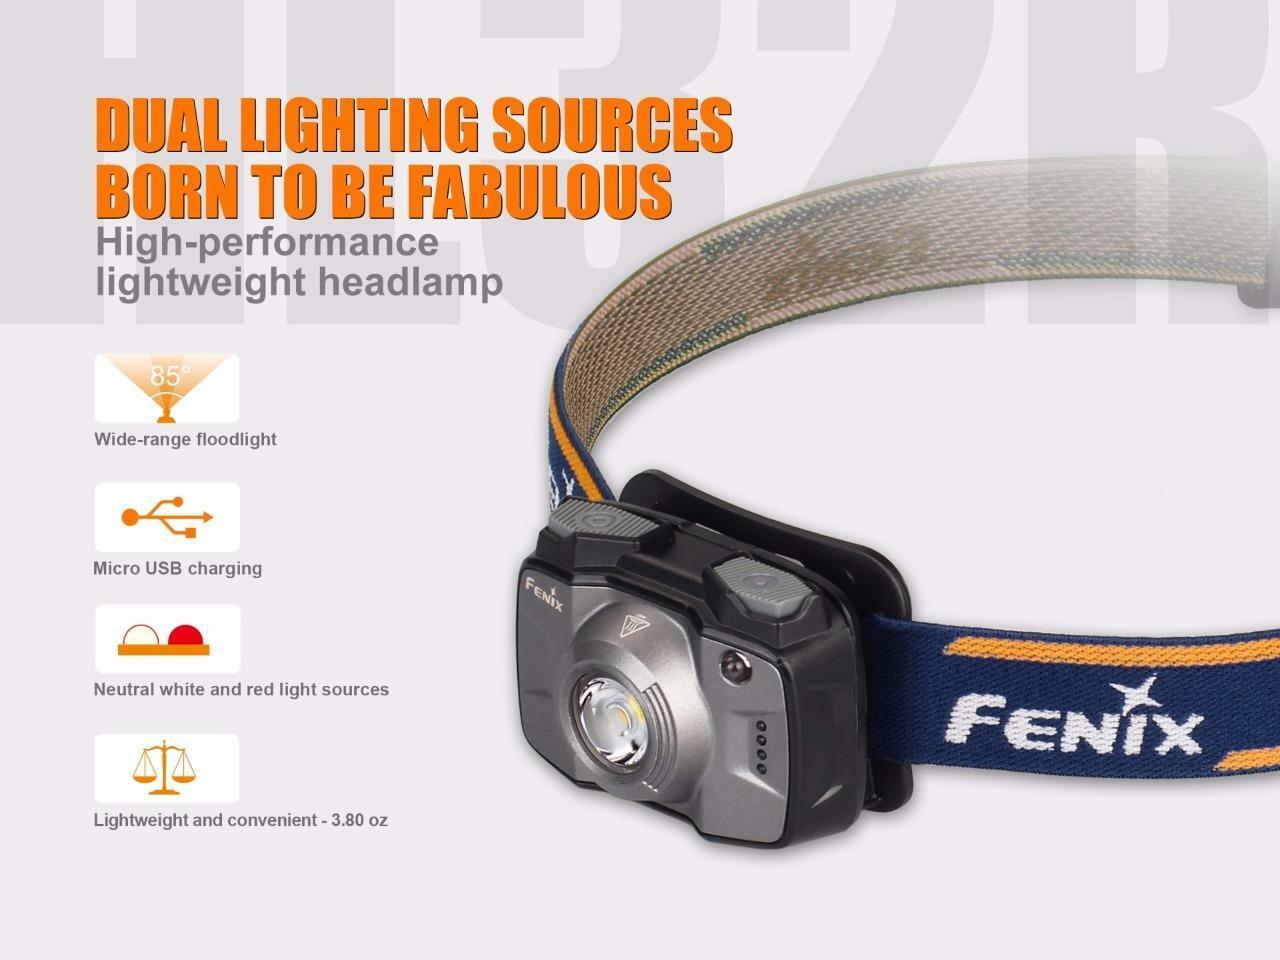 Fenix HL32R HL32R Fenix 600 Lumen  Weiß + ROT LED USB Rechargeable Battery Headlamp (Blau) caecff